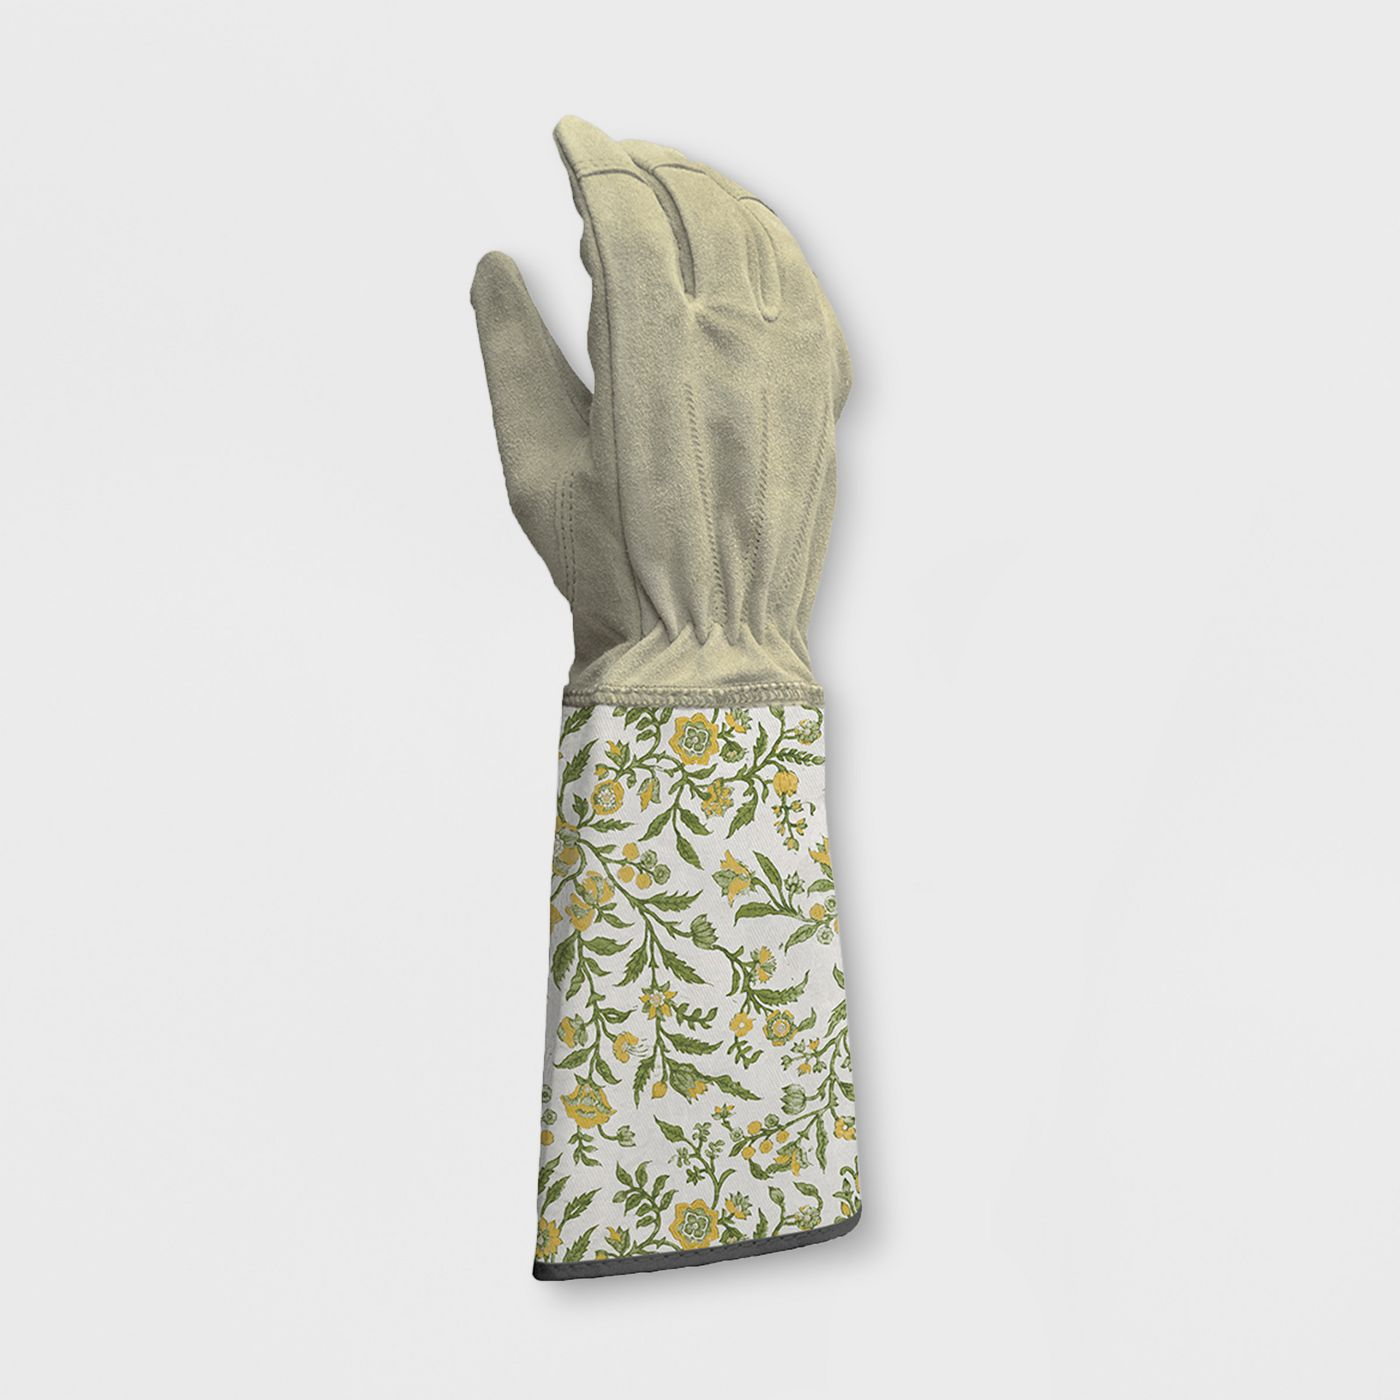 Floral Cotton Gardening Gloves